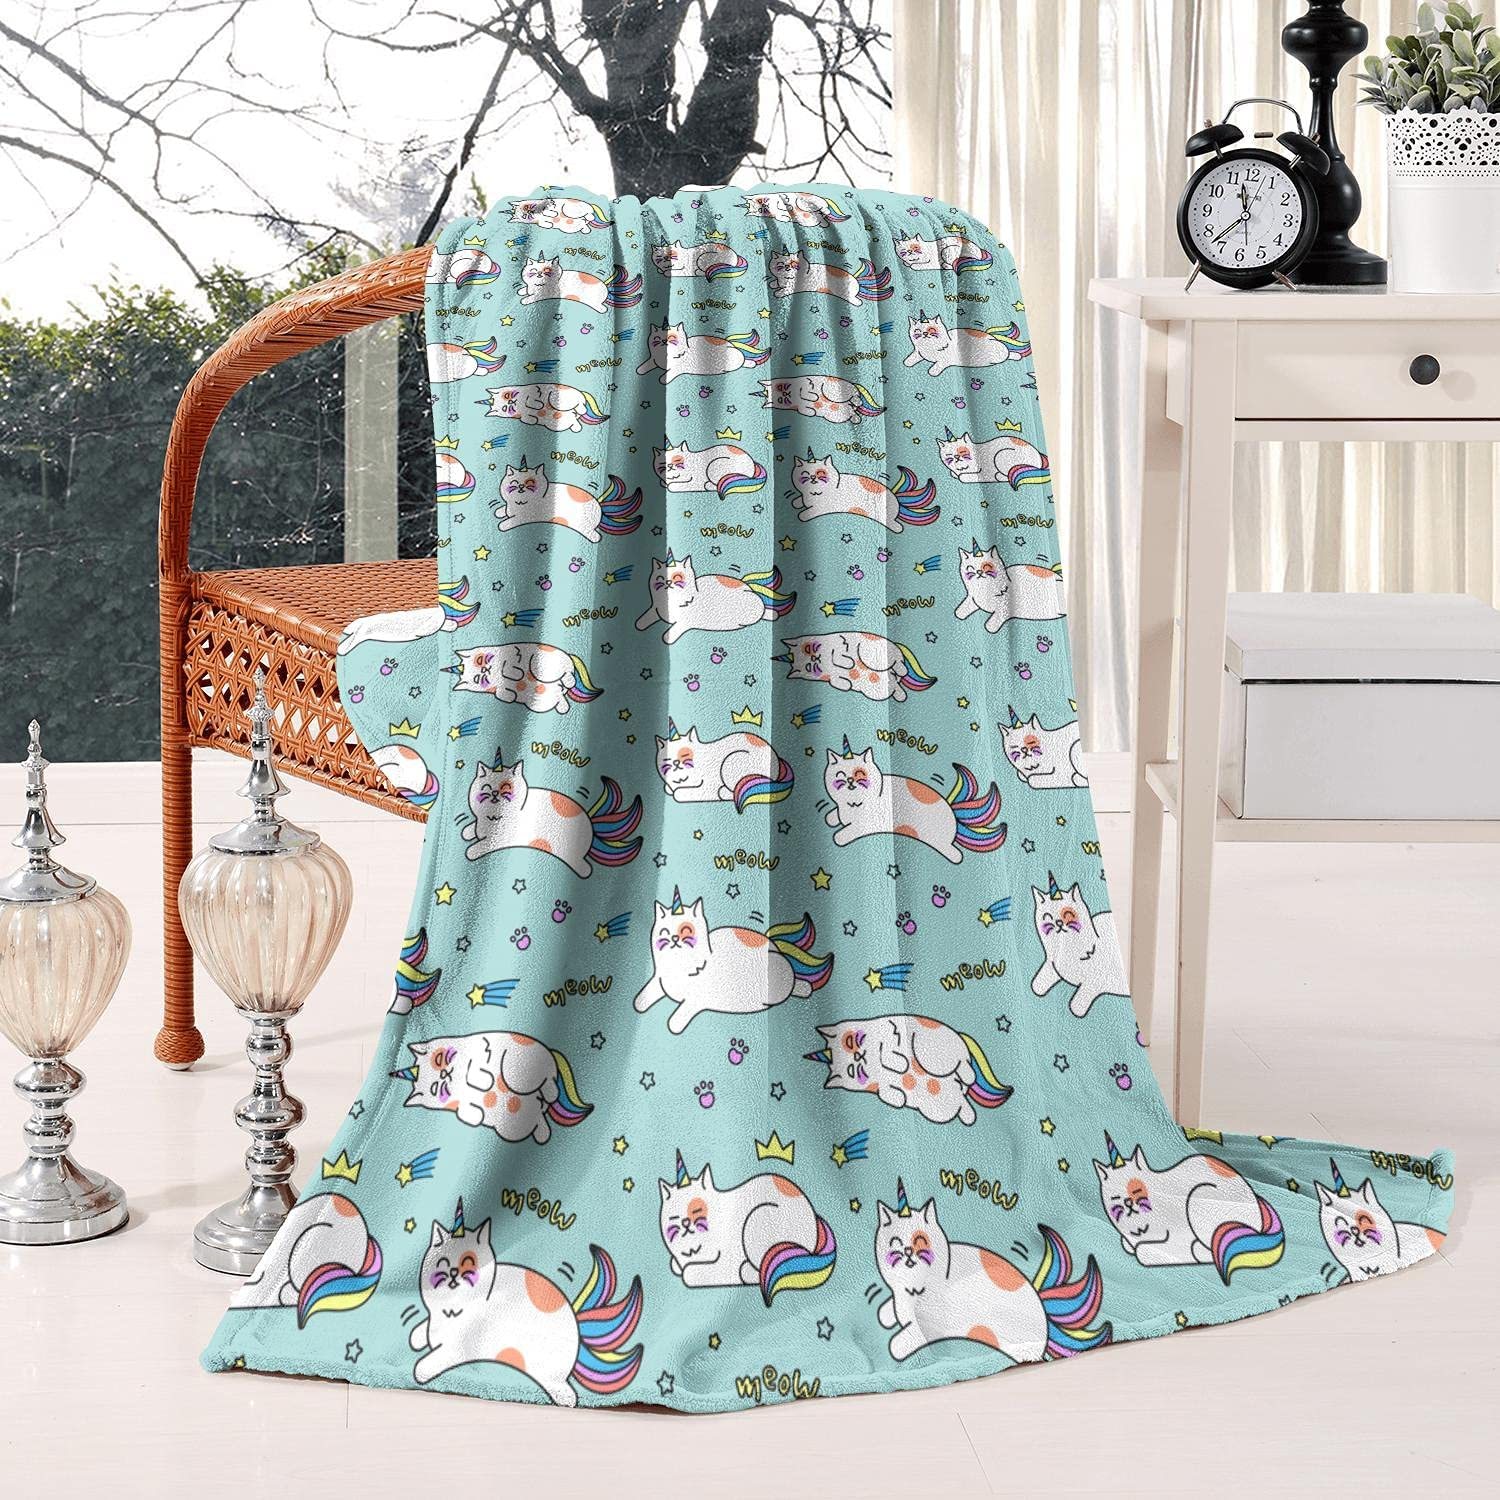 TEedhkf3 Meow - Cute Manufacturer direct delivery Cat Blue Child half Lightweight Printed Unicorn